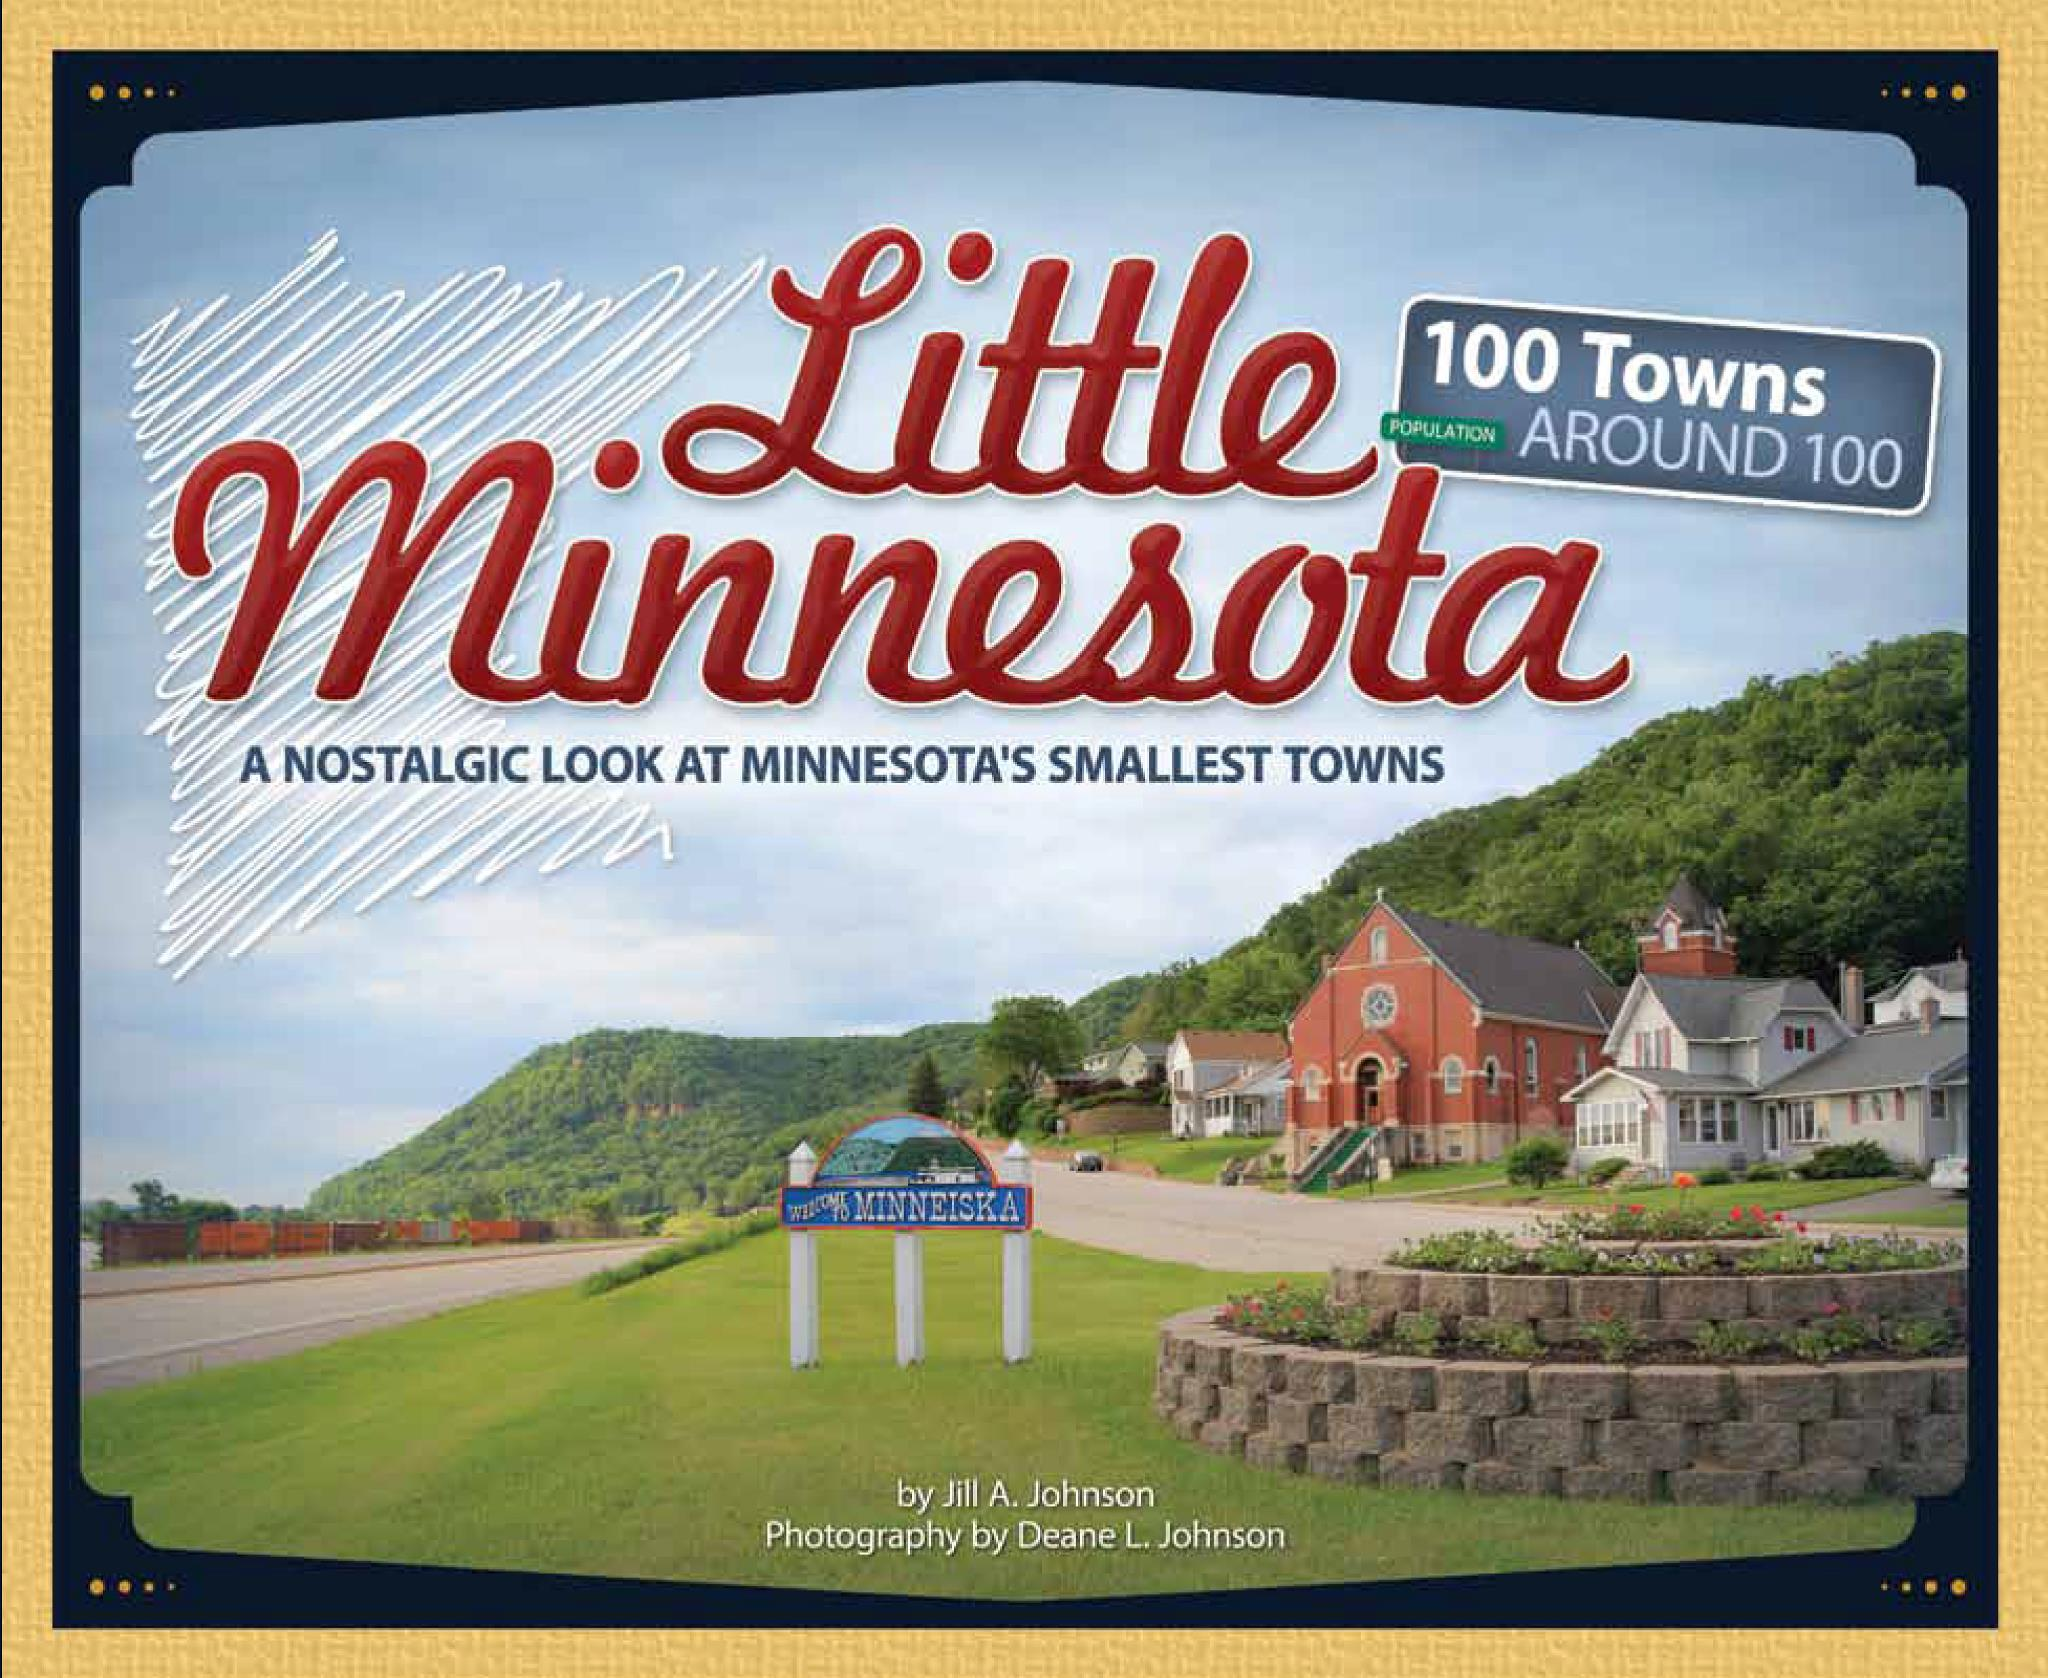 Little Minnesota Book by Jill A. Johnson and Deane L. Johnson